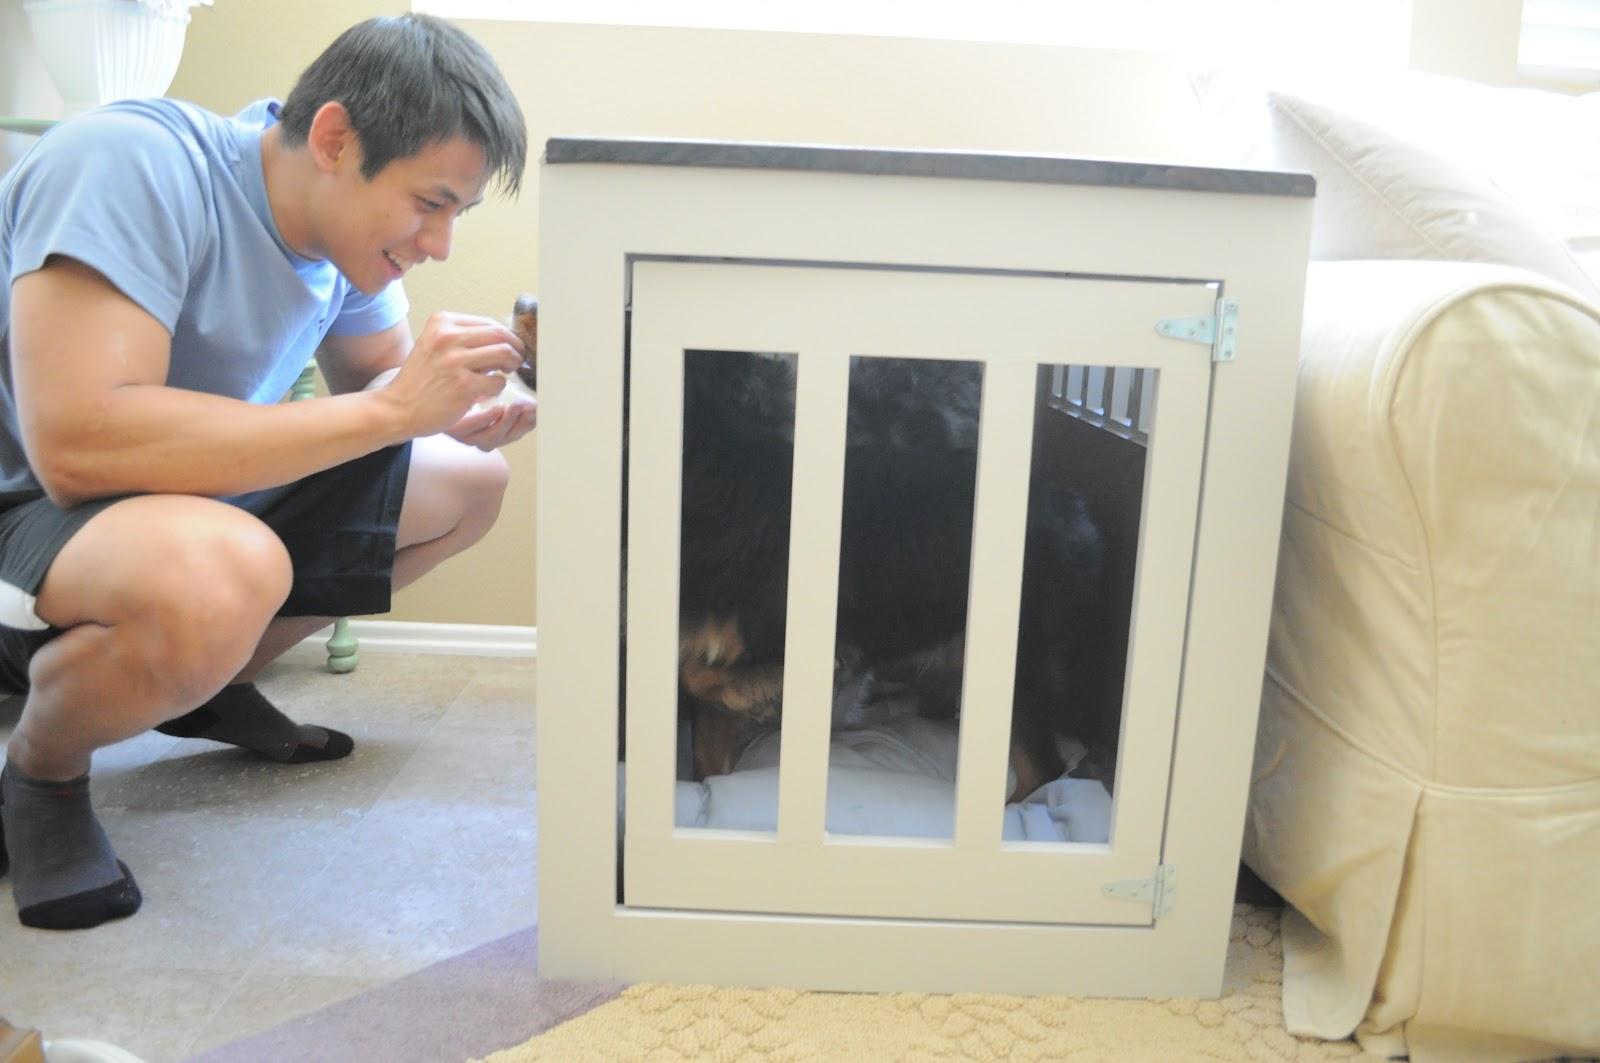 ... end postpone great looking chase after dog house end table pallets